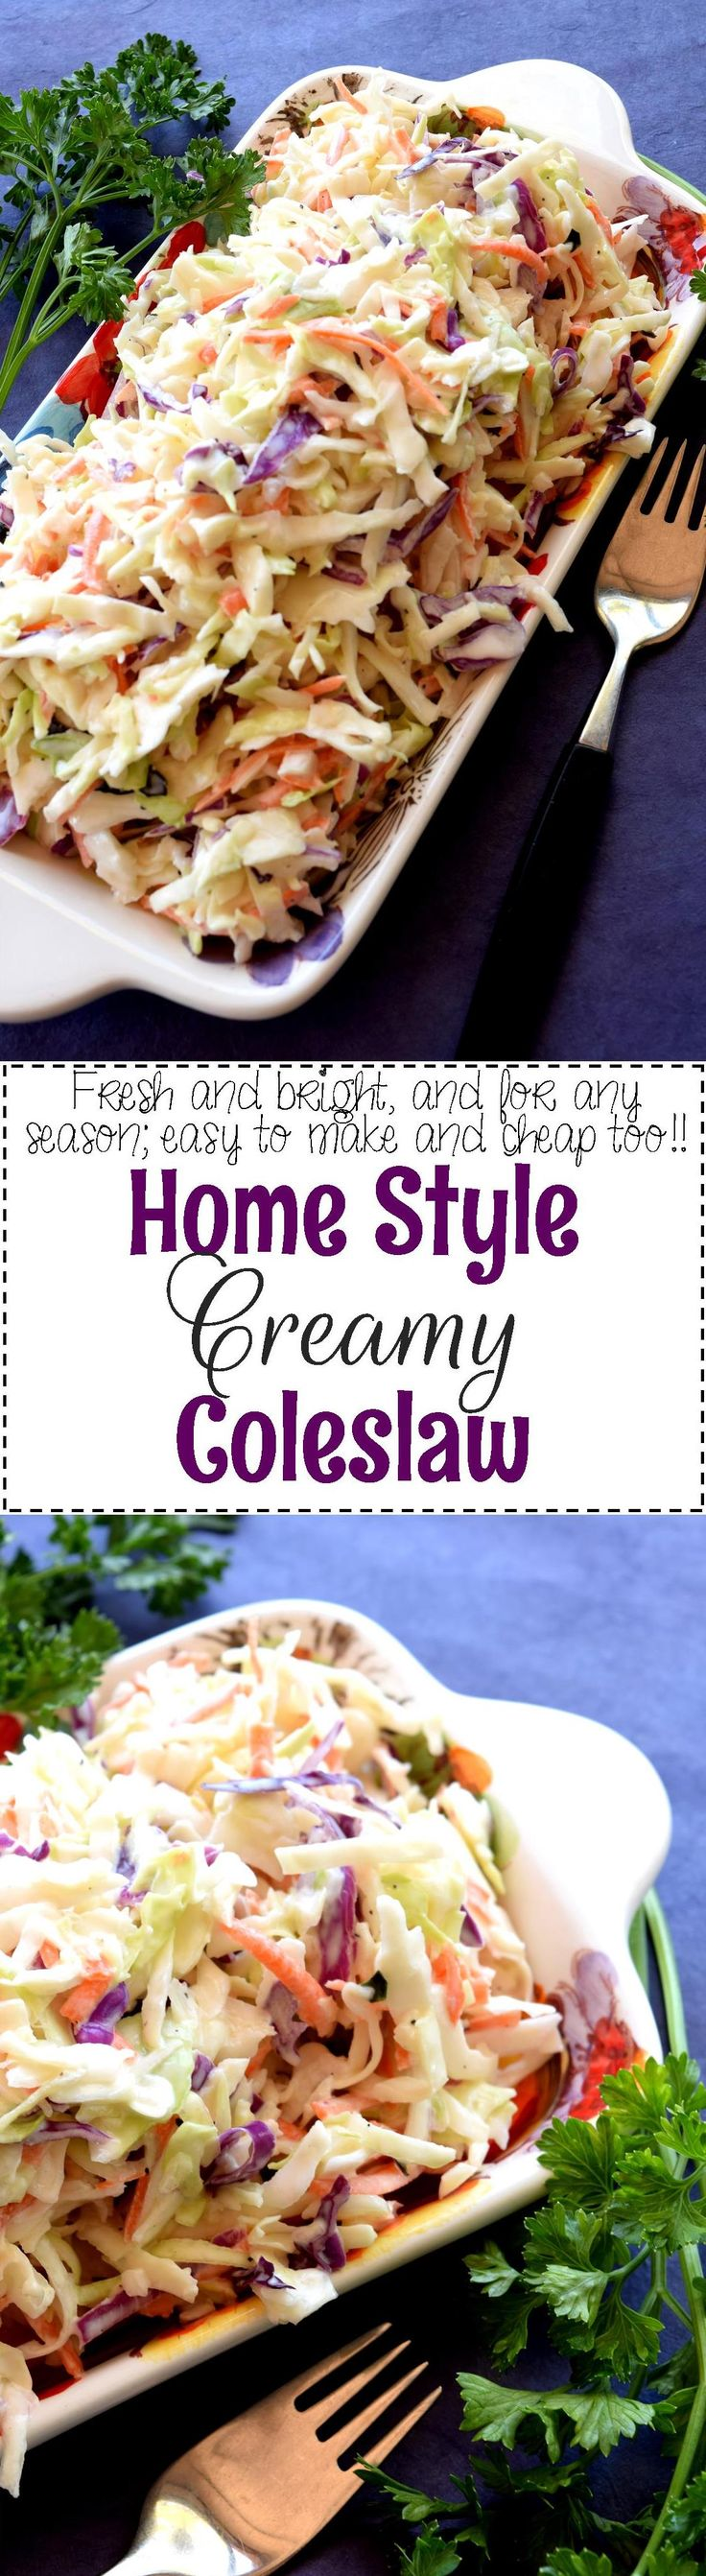 Homestyle Creamy Coleslaw - A great tasting Homestyle Creamy Coleslaw consists of simple ingredients, no fuss, and lots of crispy, crunchy vegetables.  This coleslaw is the ultimate in summer family comfort food!